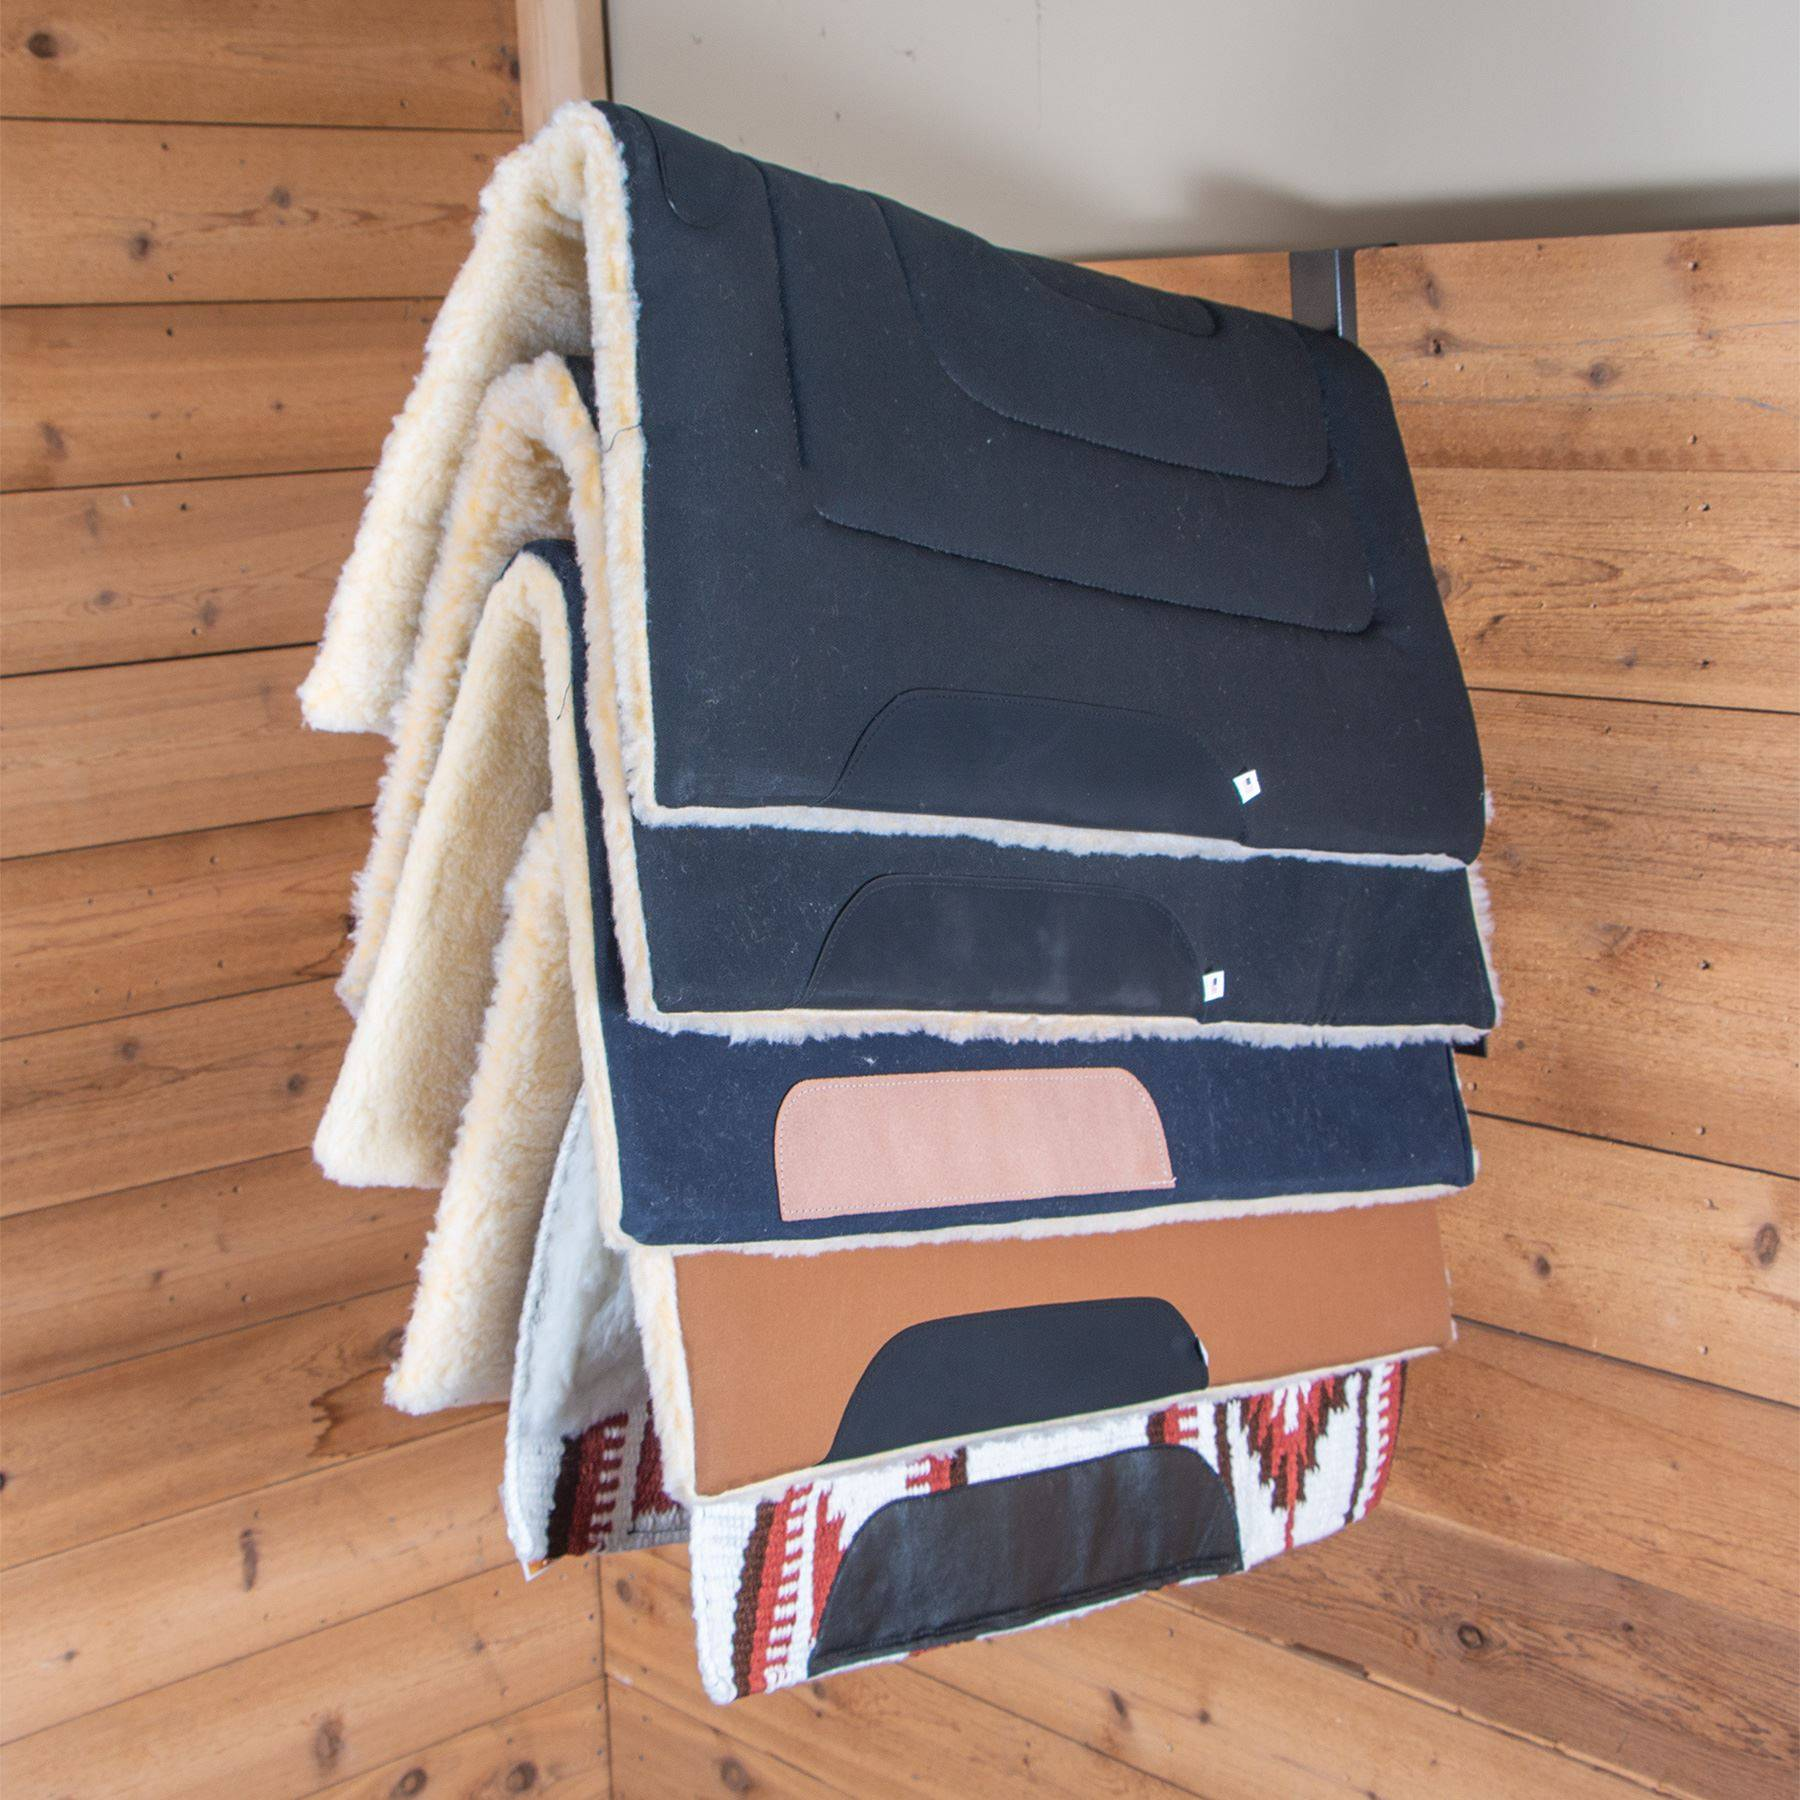 easy up portable wall hanging 5 hook saddle pad rack